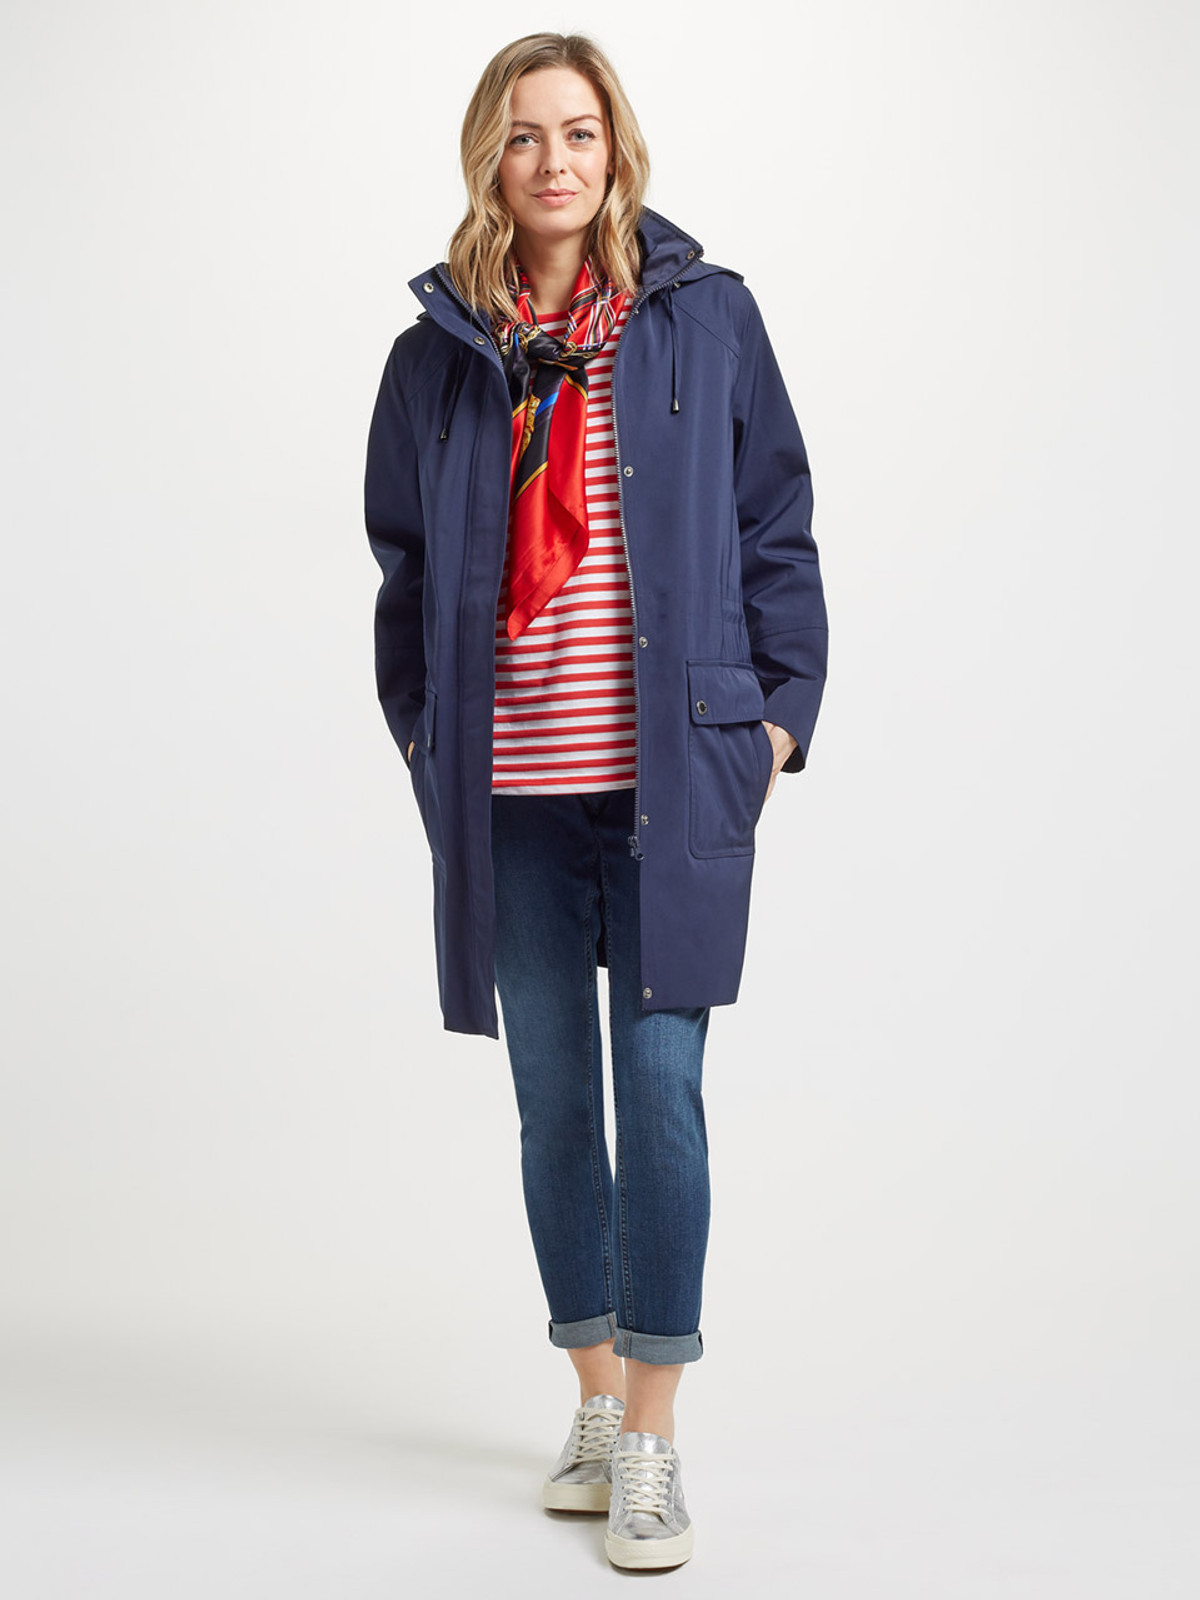 CAMBER – Long Performance Jacket, Navy